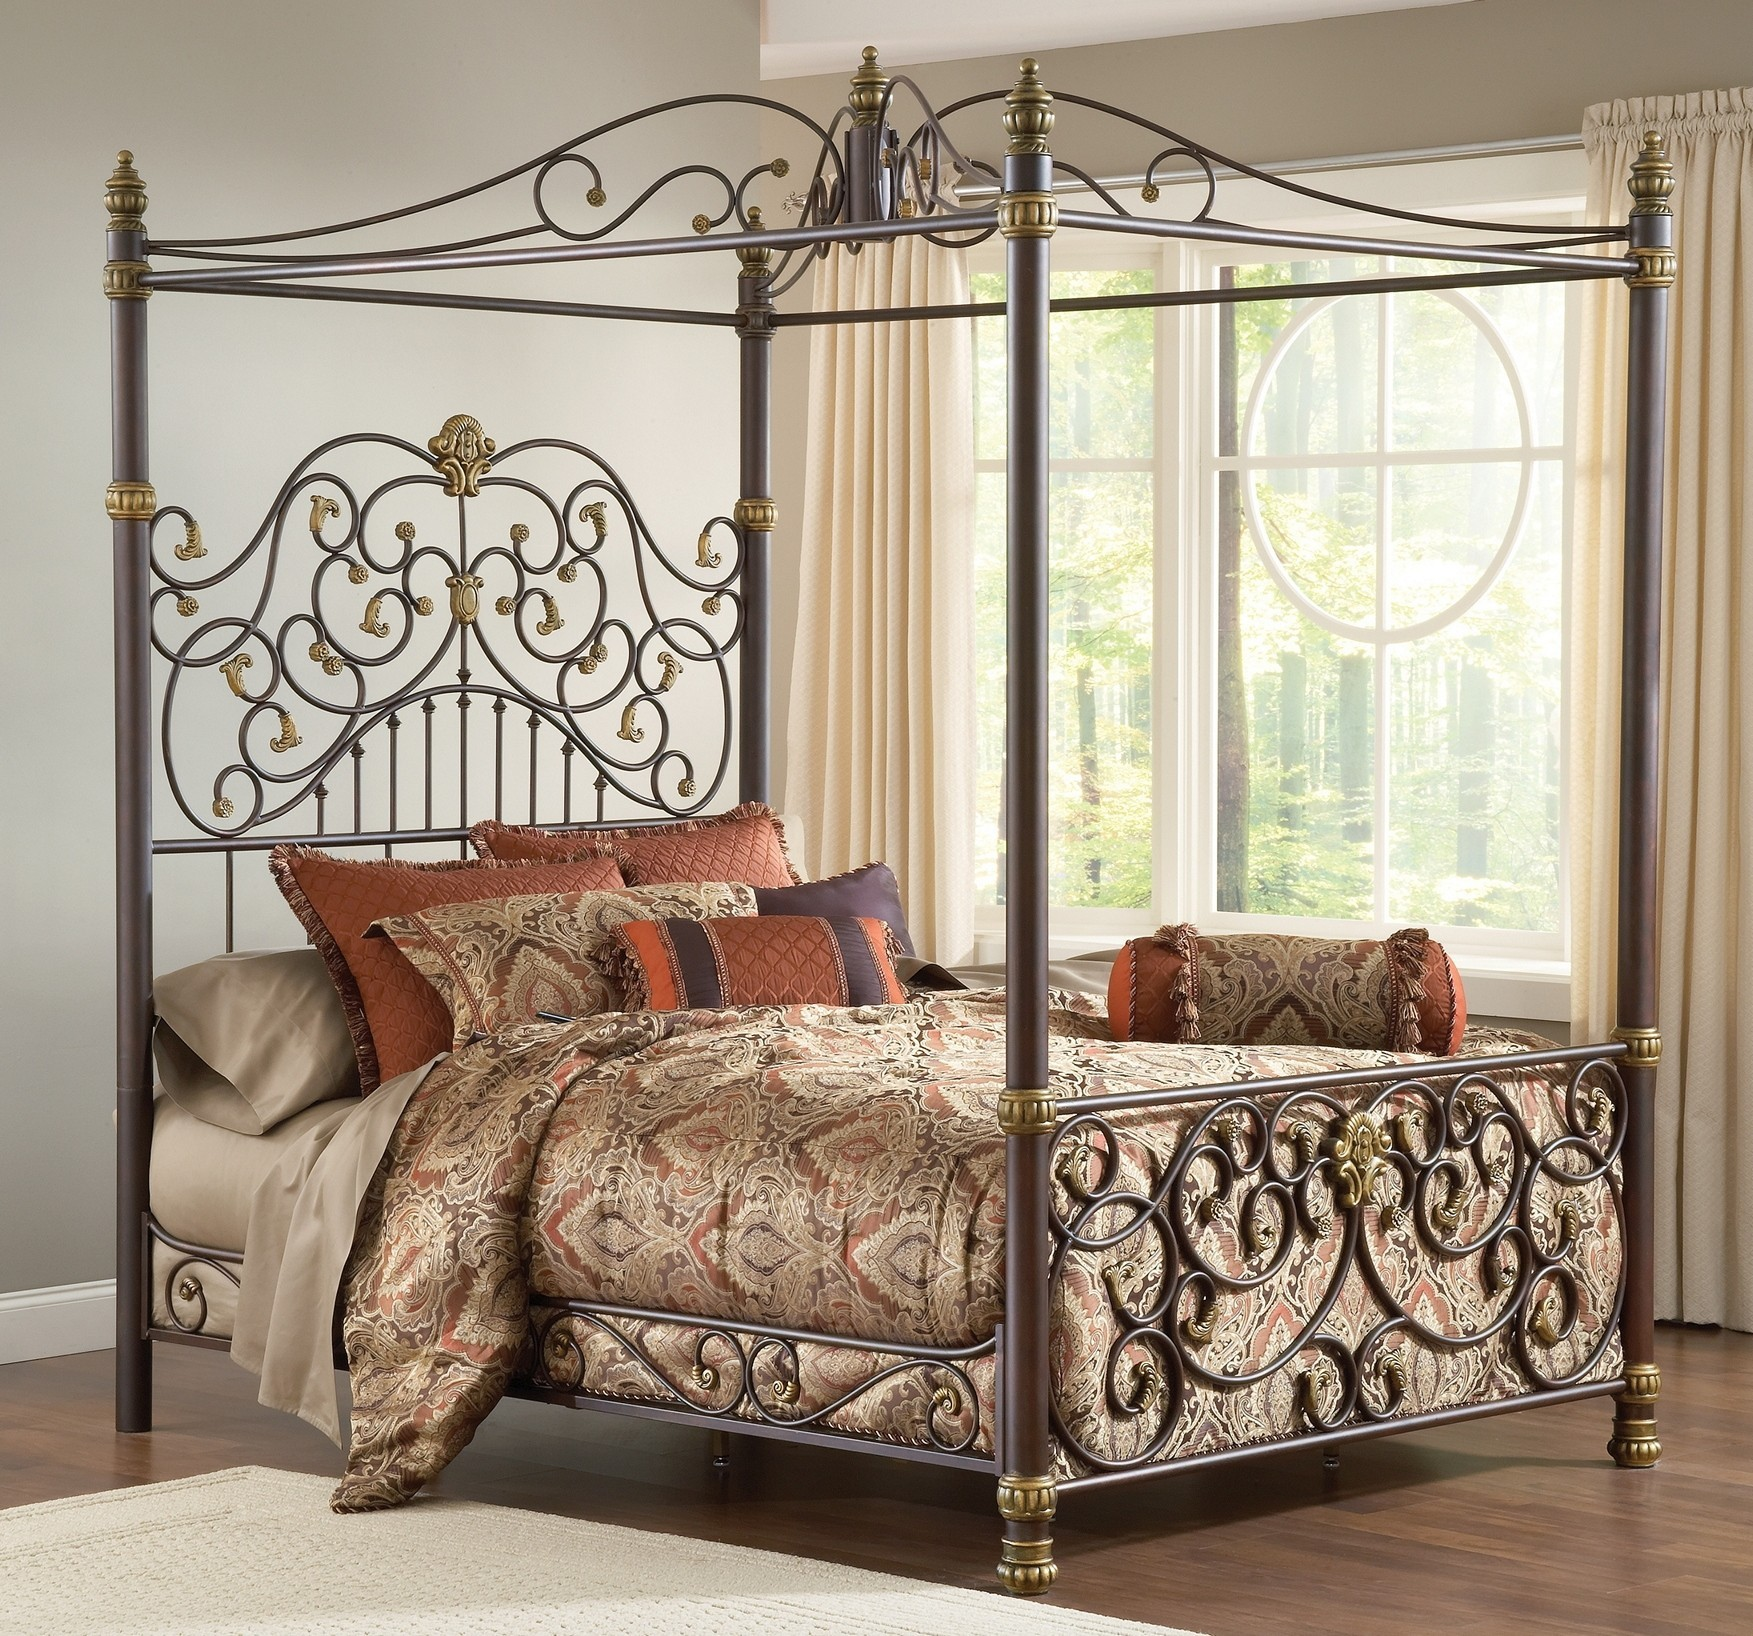 Iron canopy bed frame homesfeed for Iron bed interior design